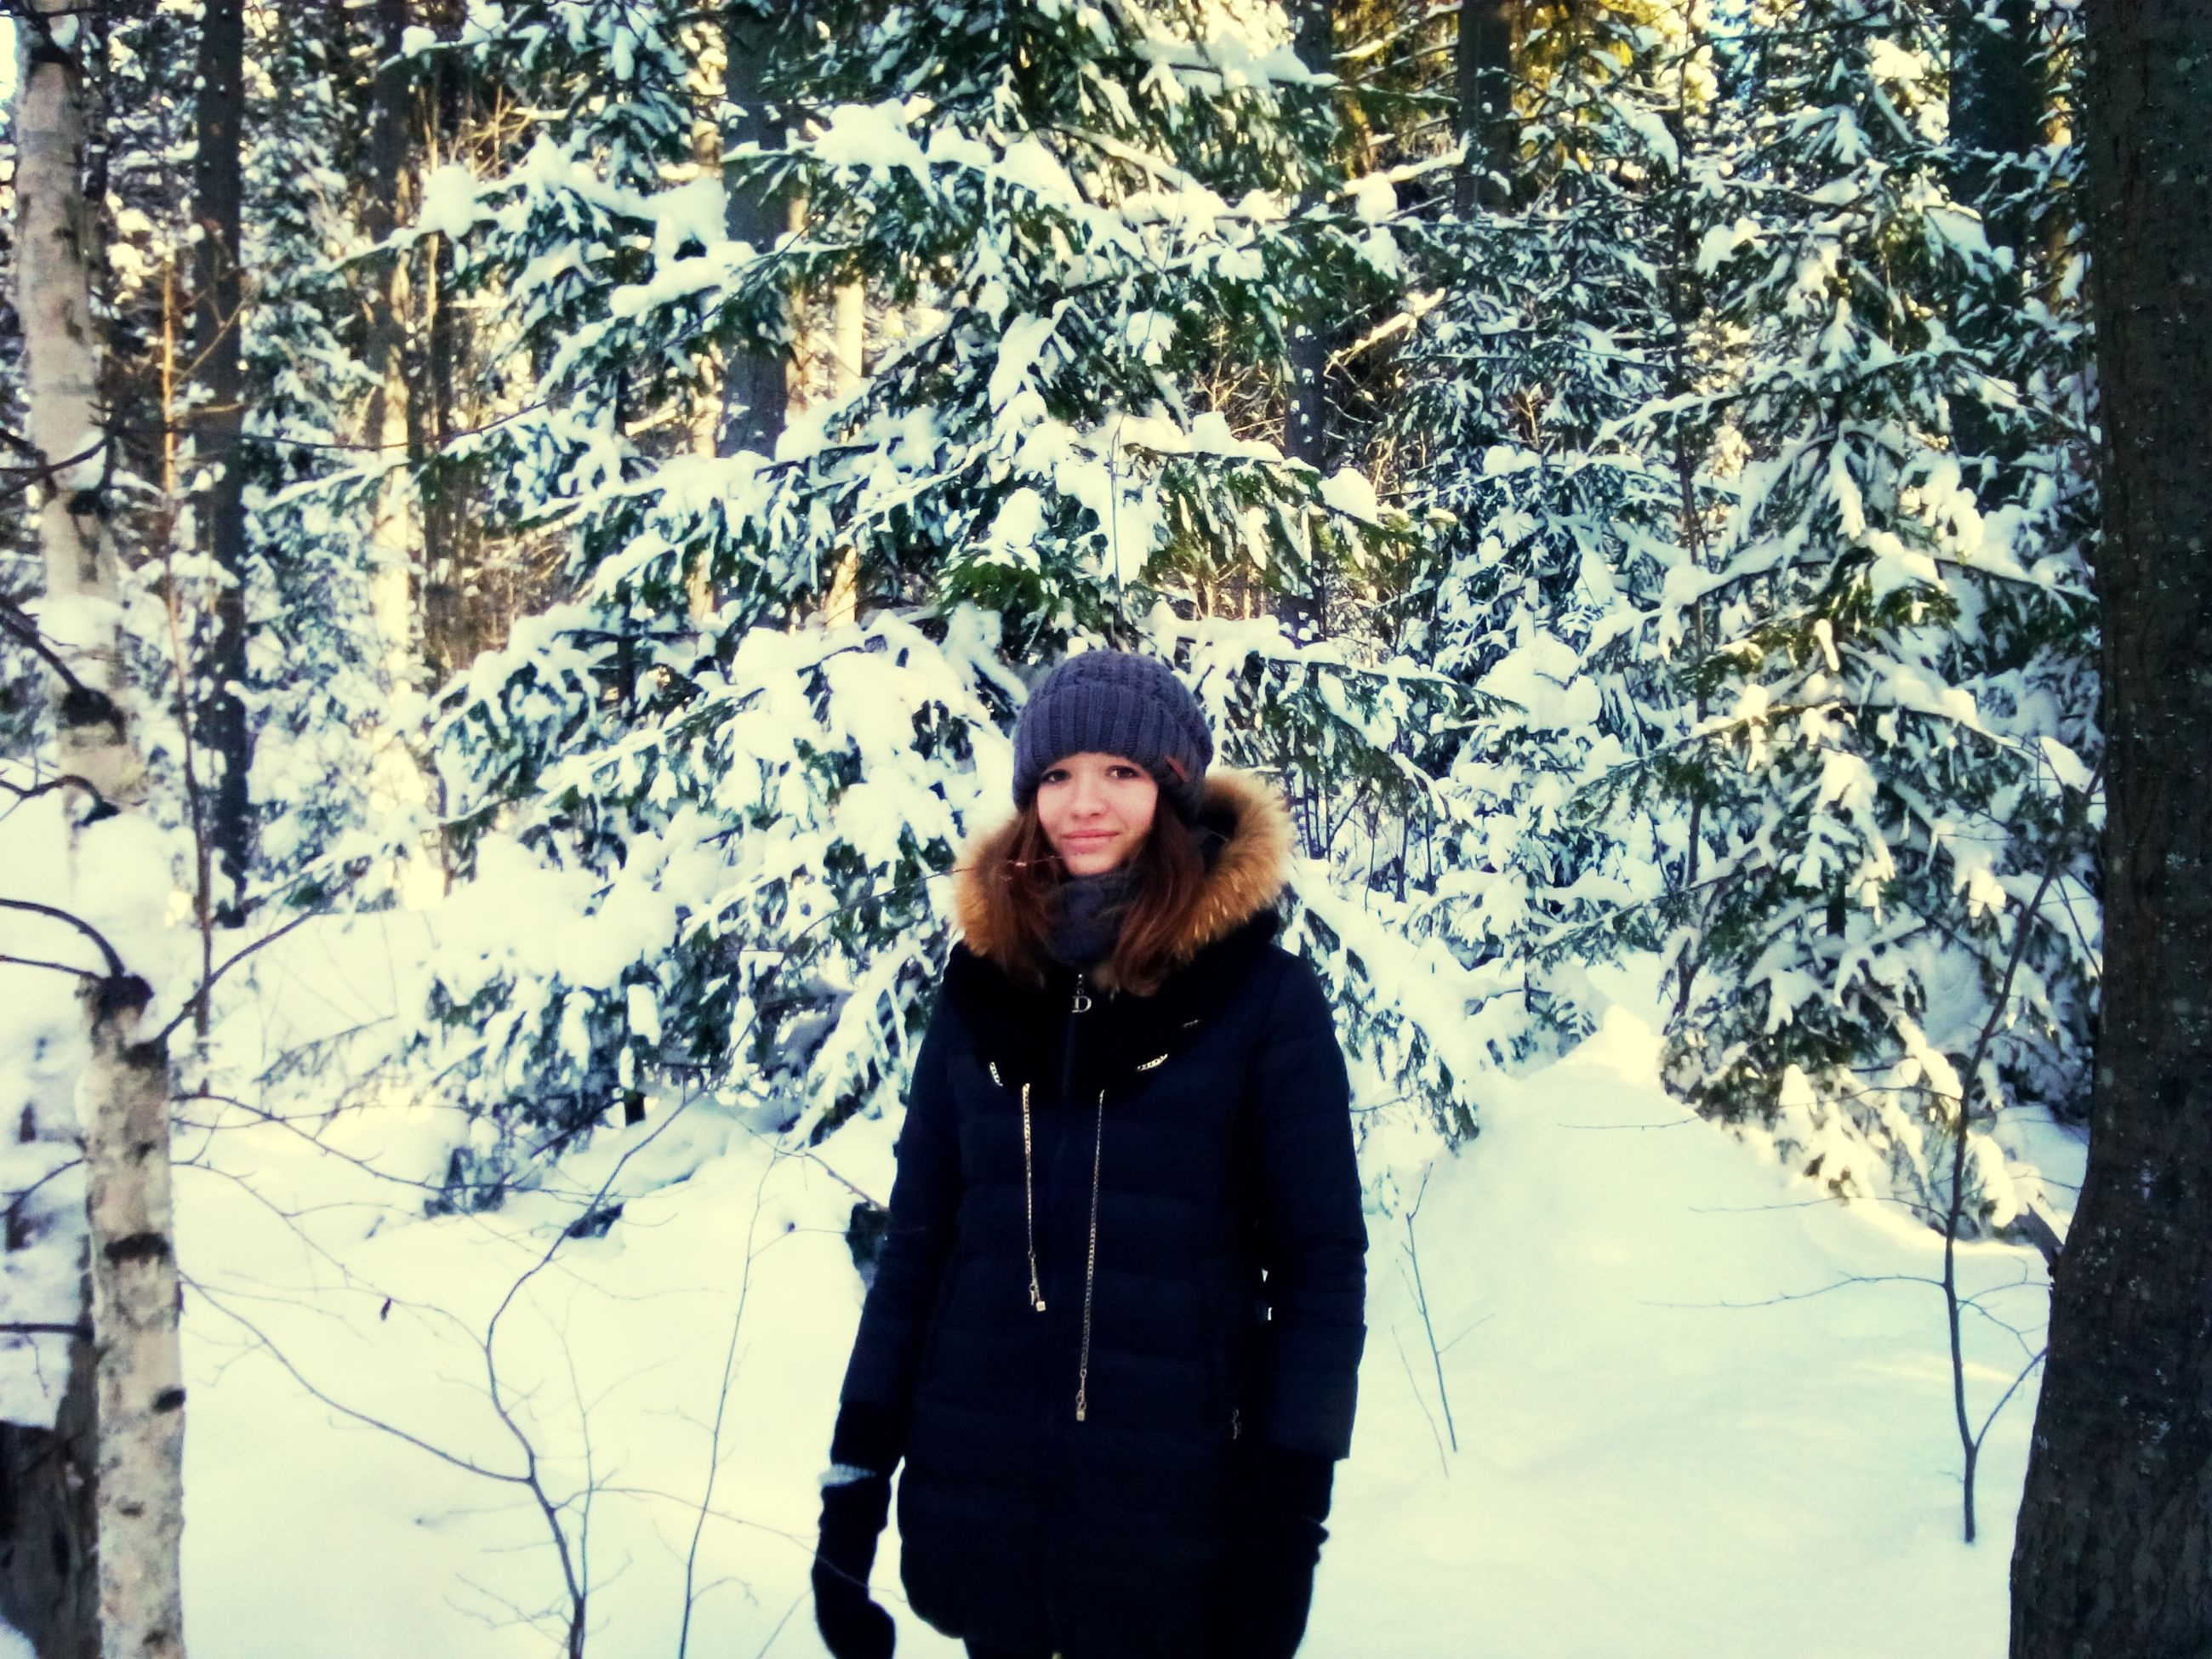 young adult, lifestyles, person, standing, leisure activity, casual clothing, young women, front view, looking at camera, waist up, portrait, three quarter length, long hair, smiling, warm clothing, winter, day